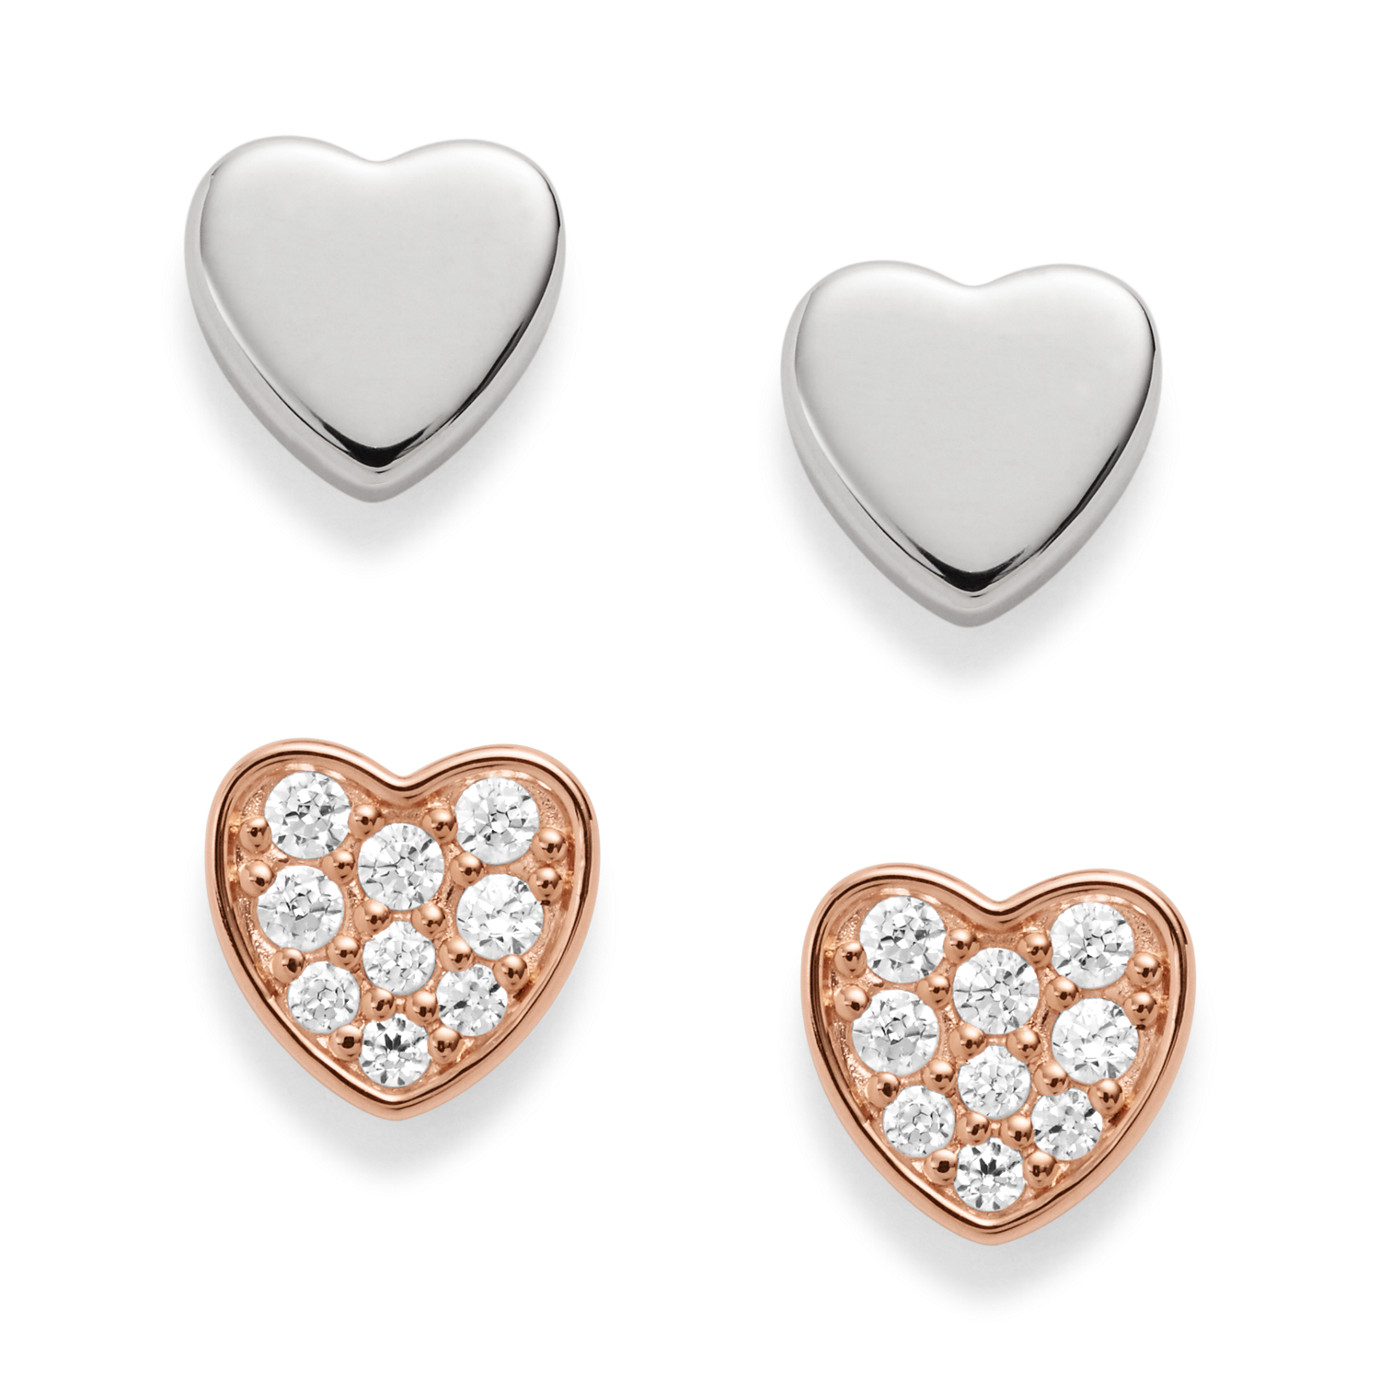 Duo Heart Two-Tone Sterling Silver Studs